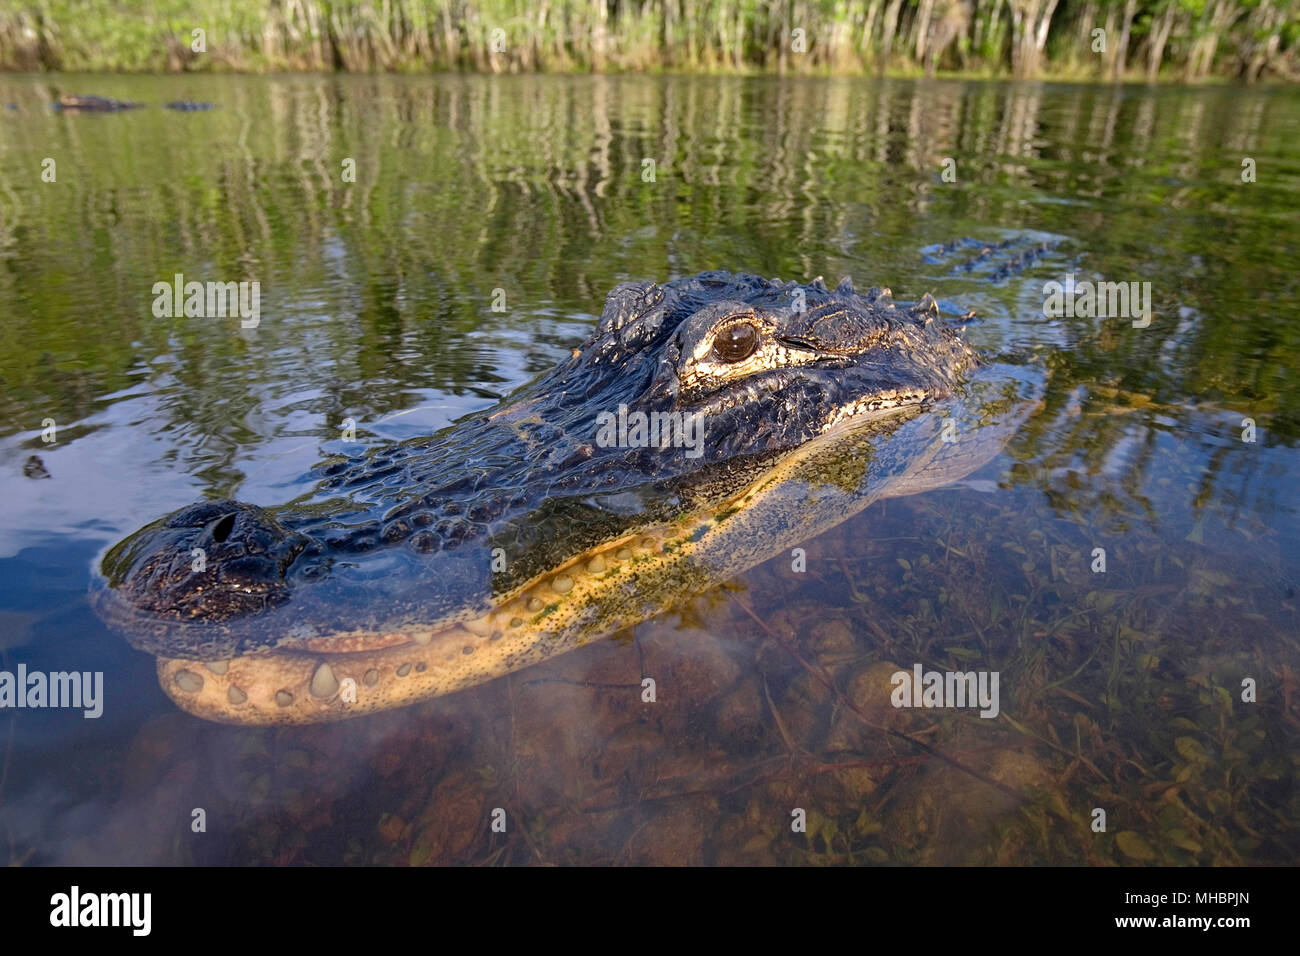 American alligator (Alligator mississippiensis), lies in the water, animal portrait, Everglades, Florida, USA - Stock Image